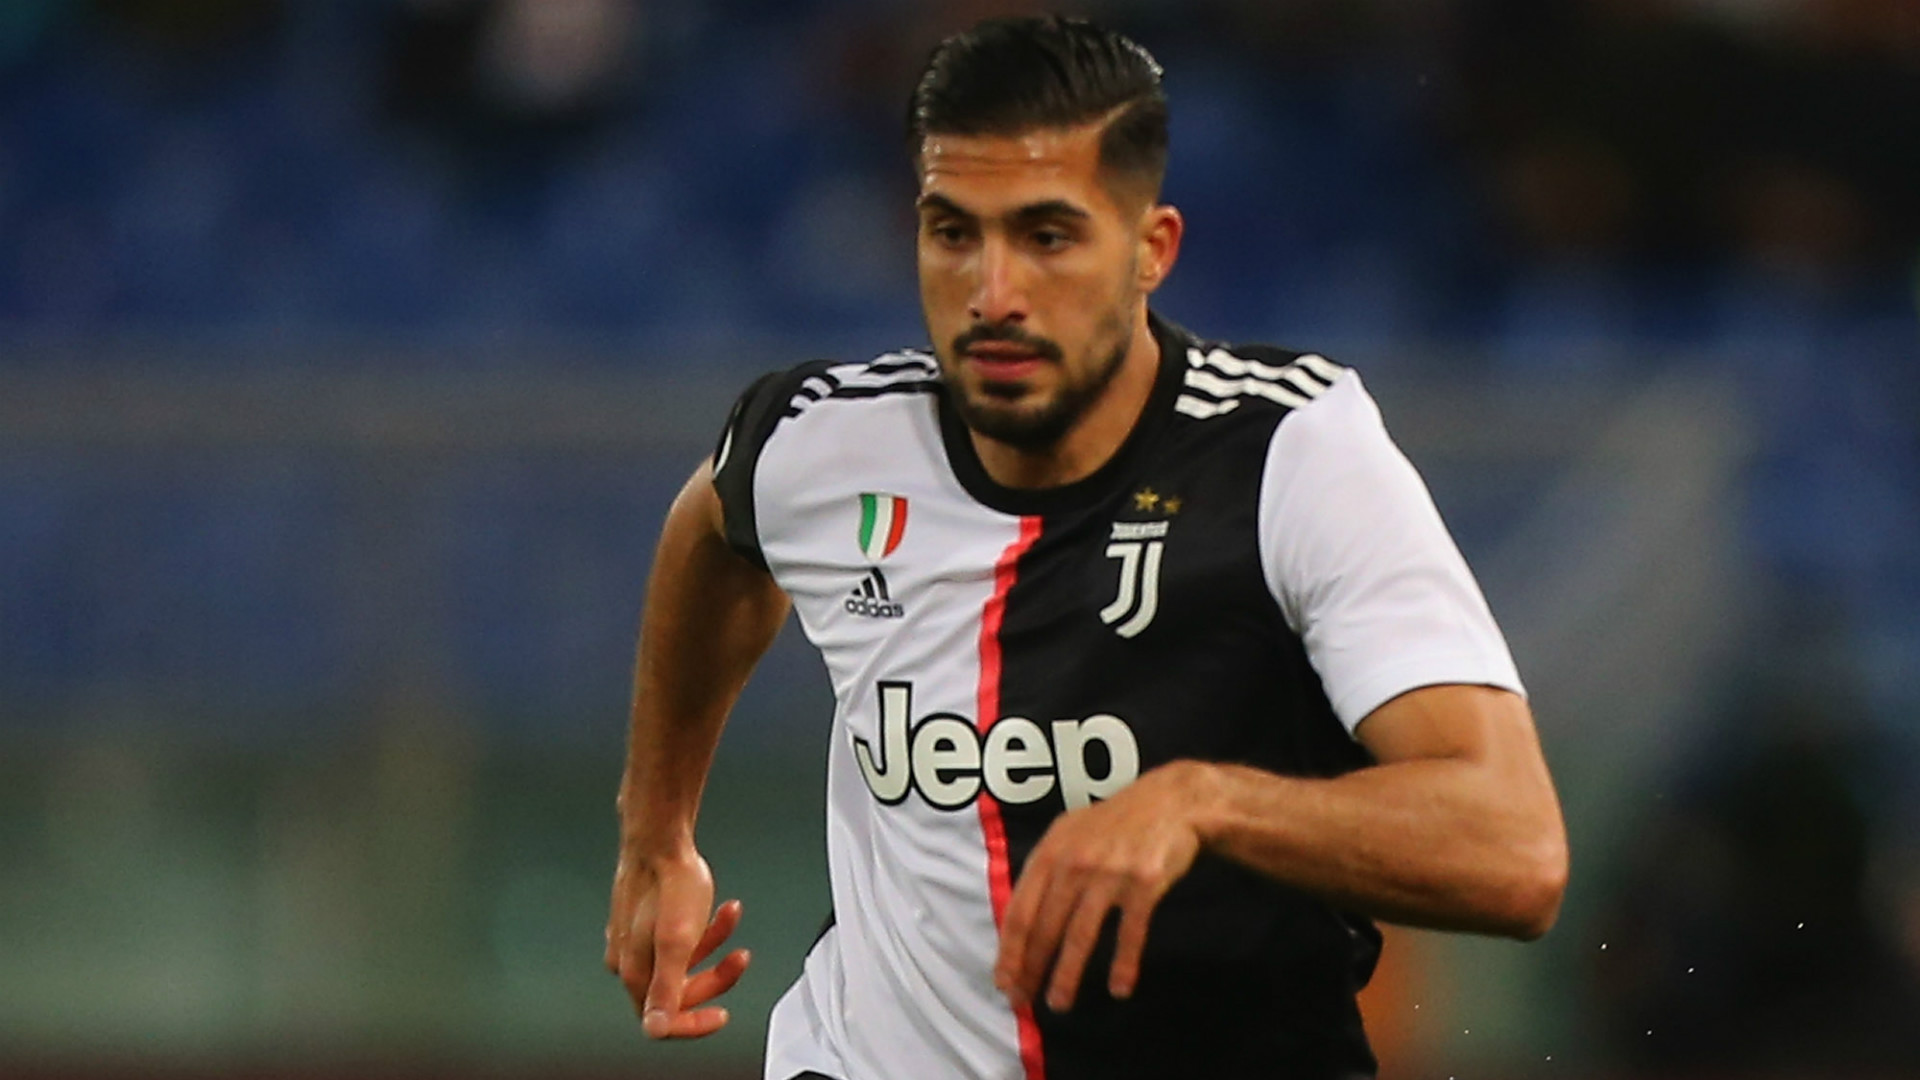 Bayern Munich not interested in Emre Can with Coutinho completing their transfer business